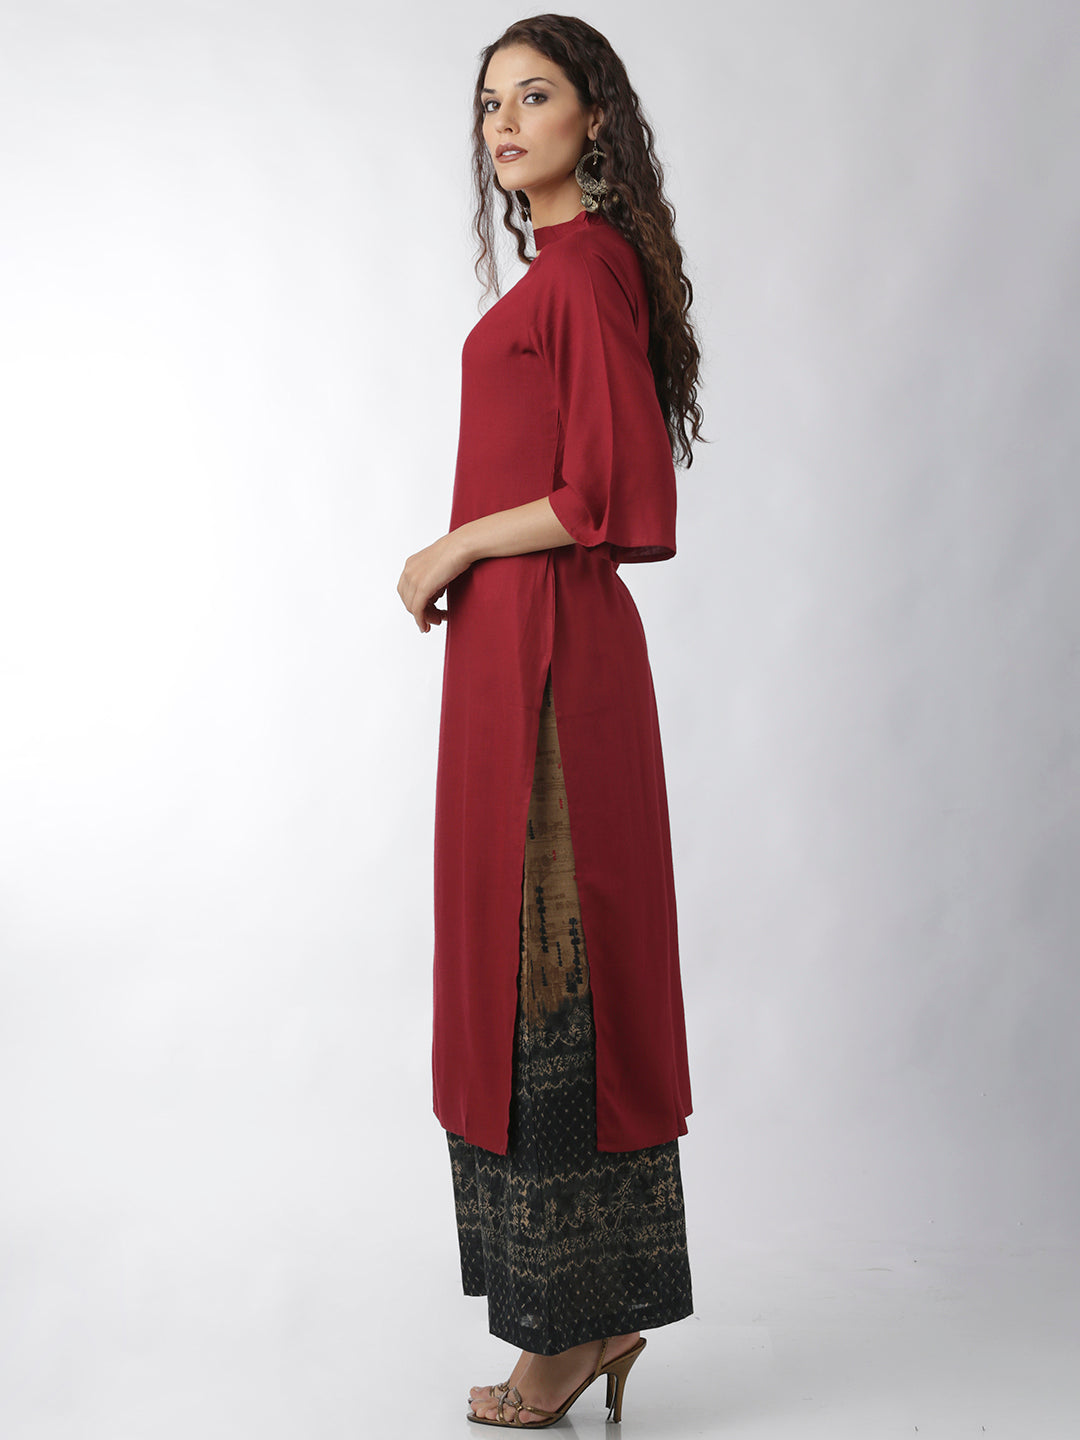 Breya Statement Neck Solid Maroon Straight Kurta